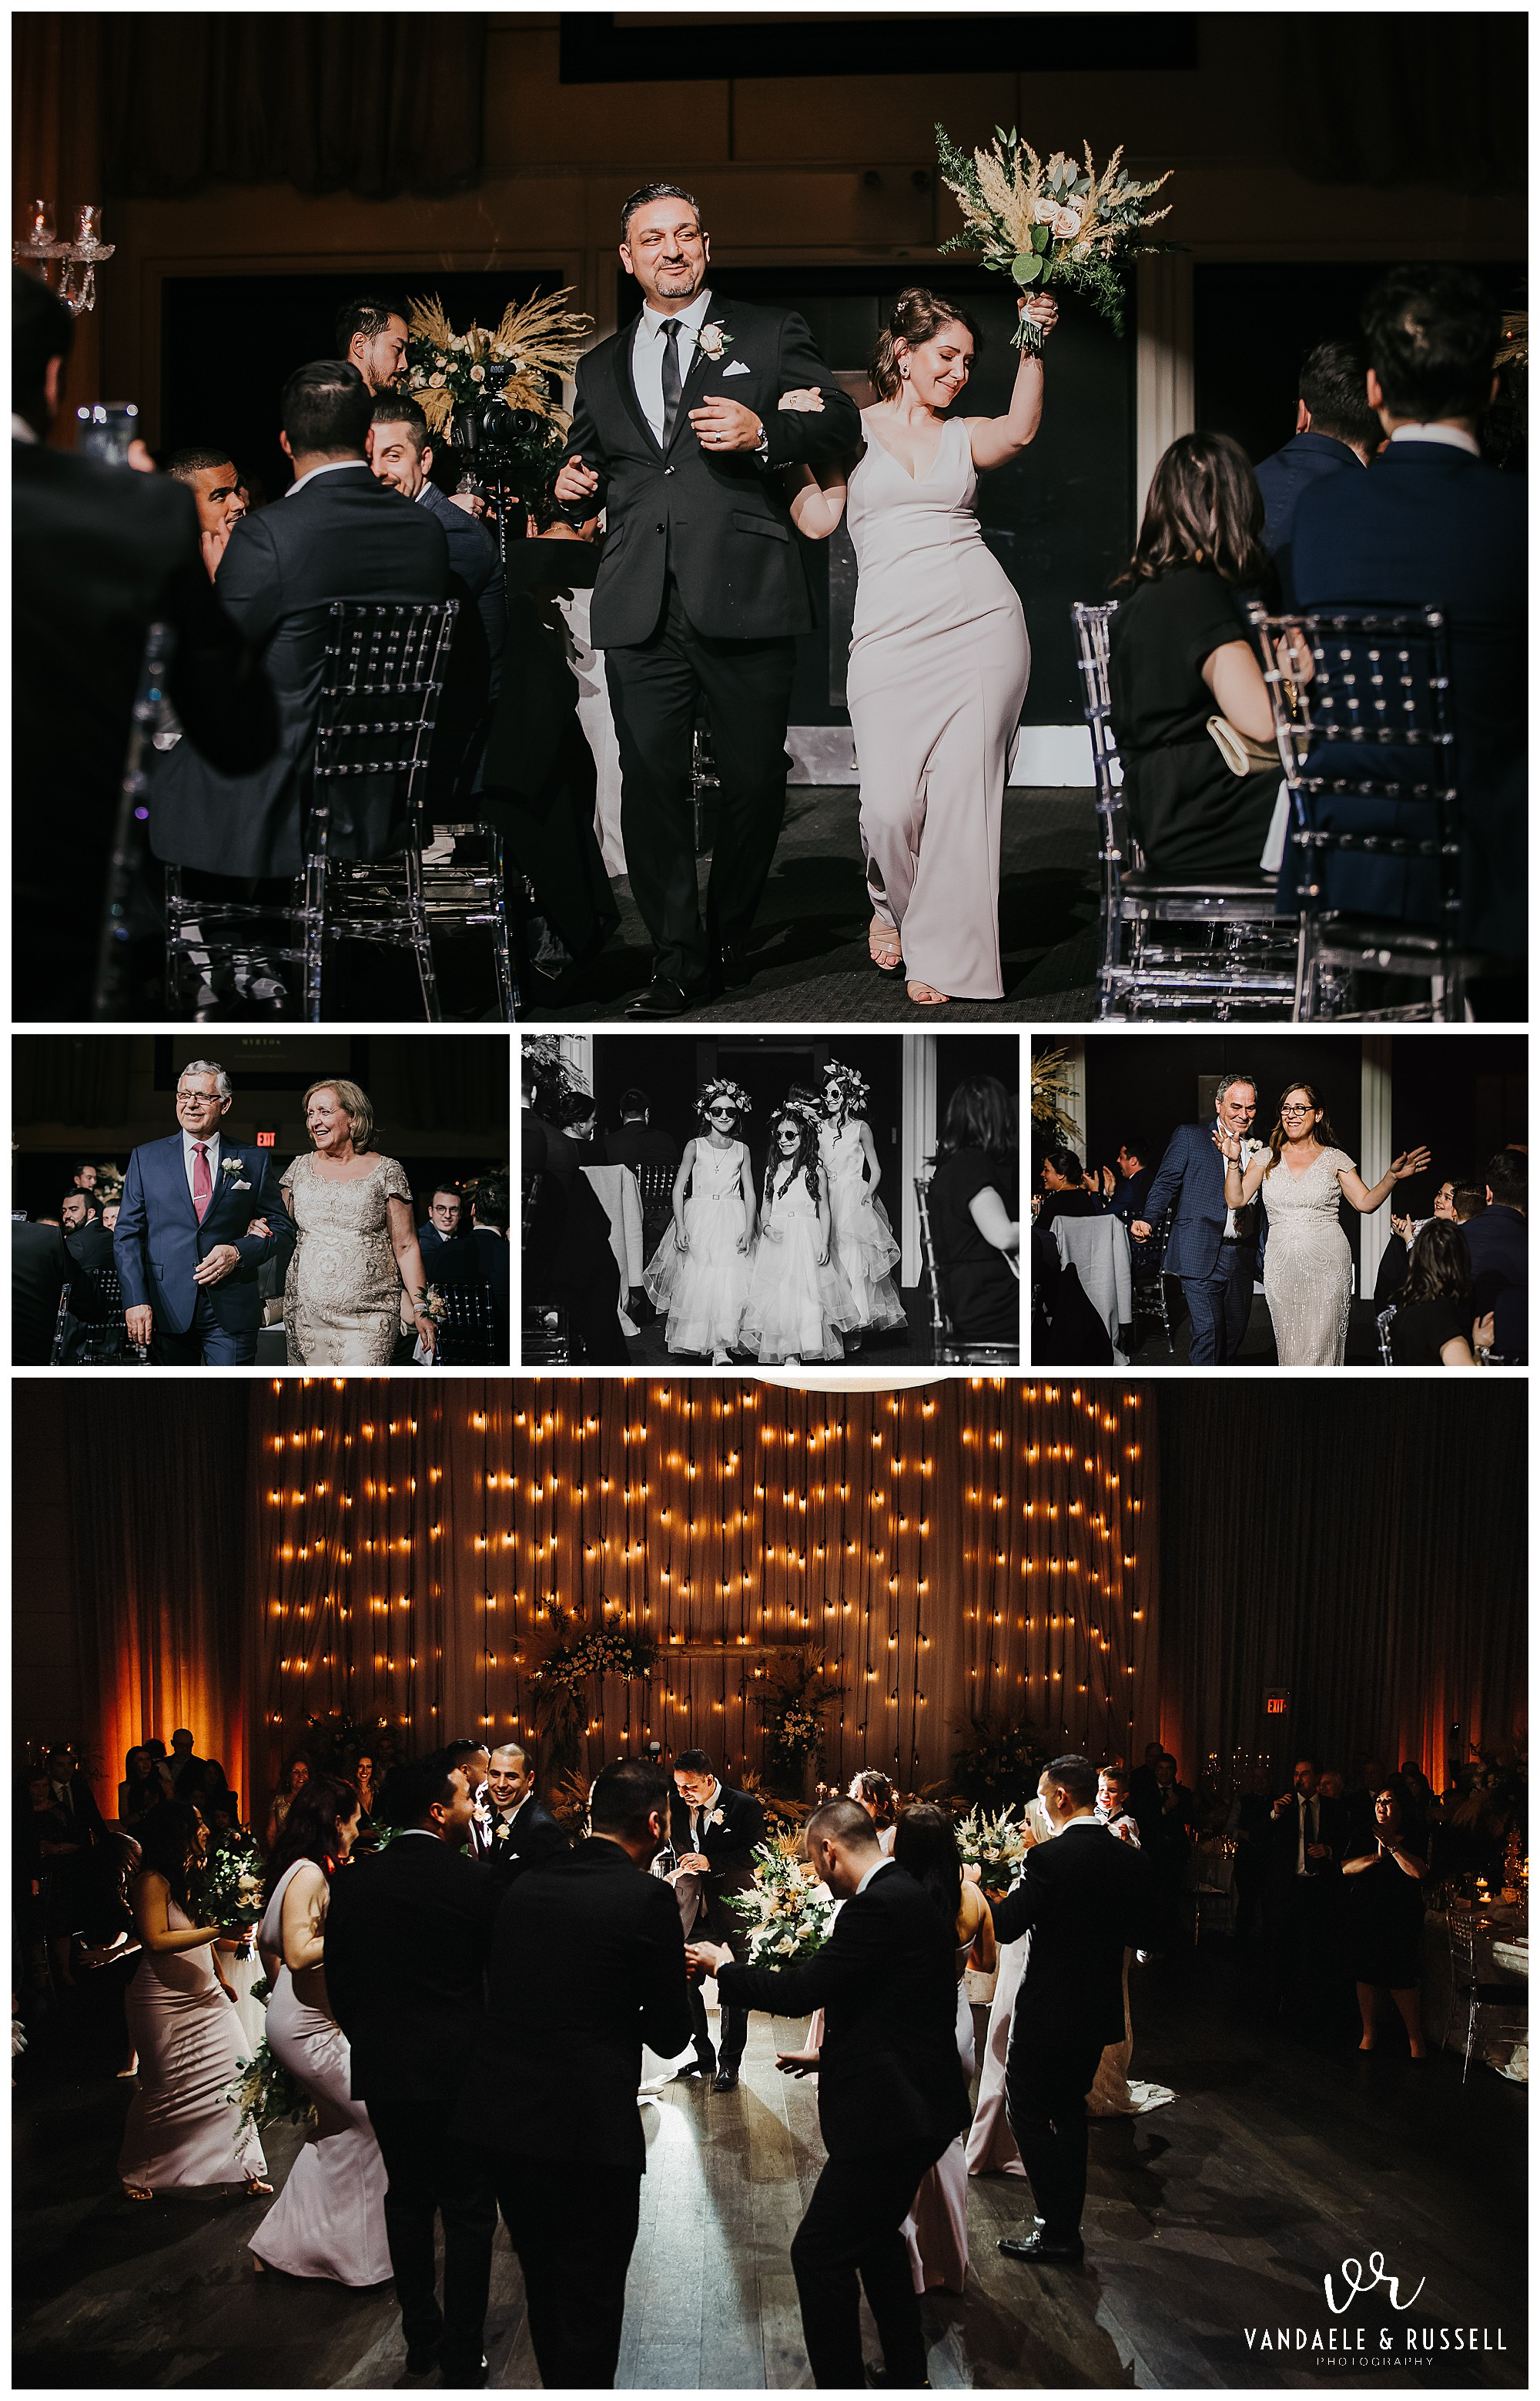 Joanna-Christos-Grand-Luxe-Wedding-Photos-Mint-Room-Toronto-VanDaele-Russell_0098.jpg